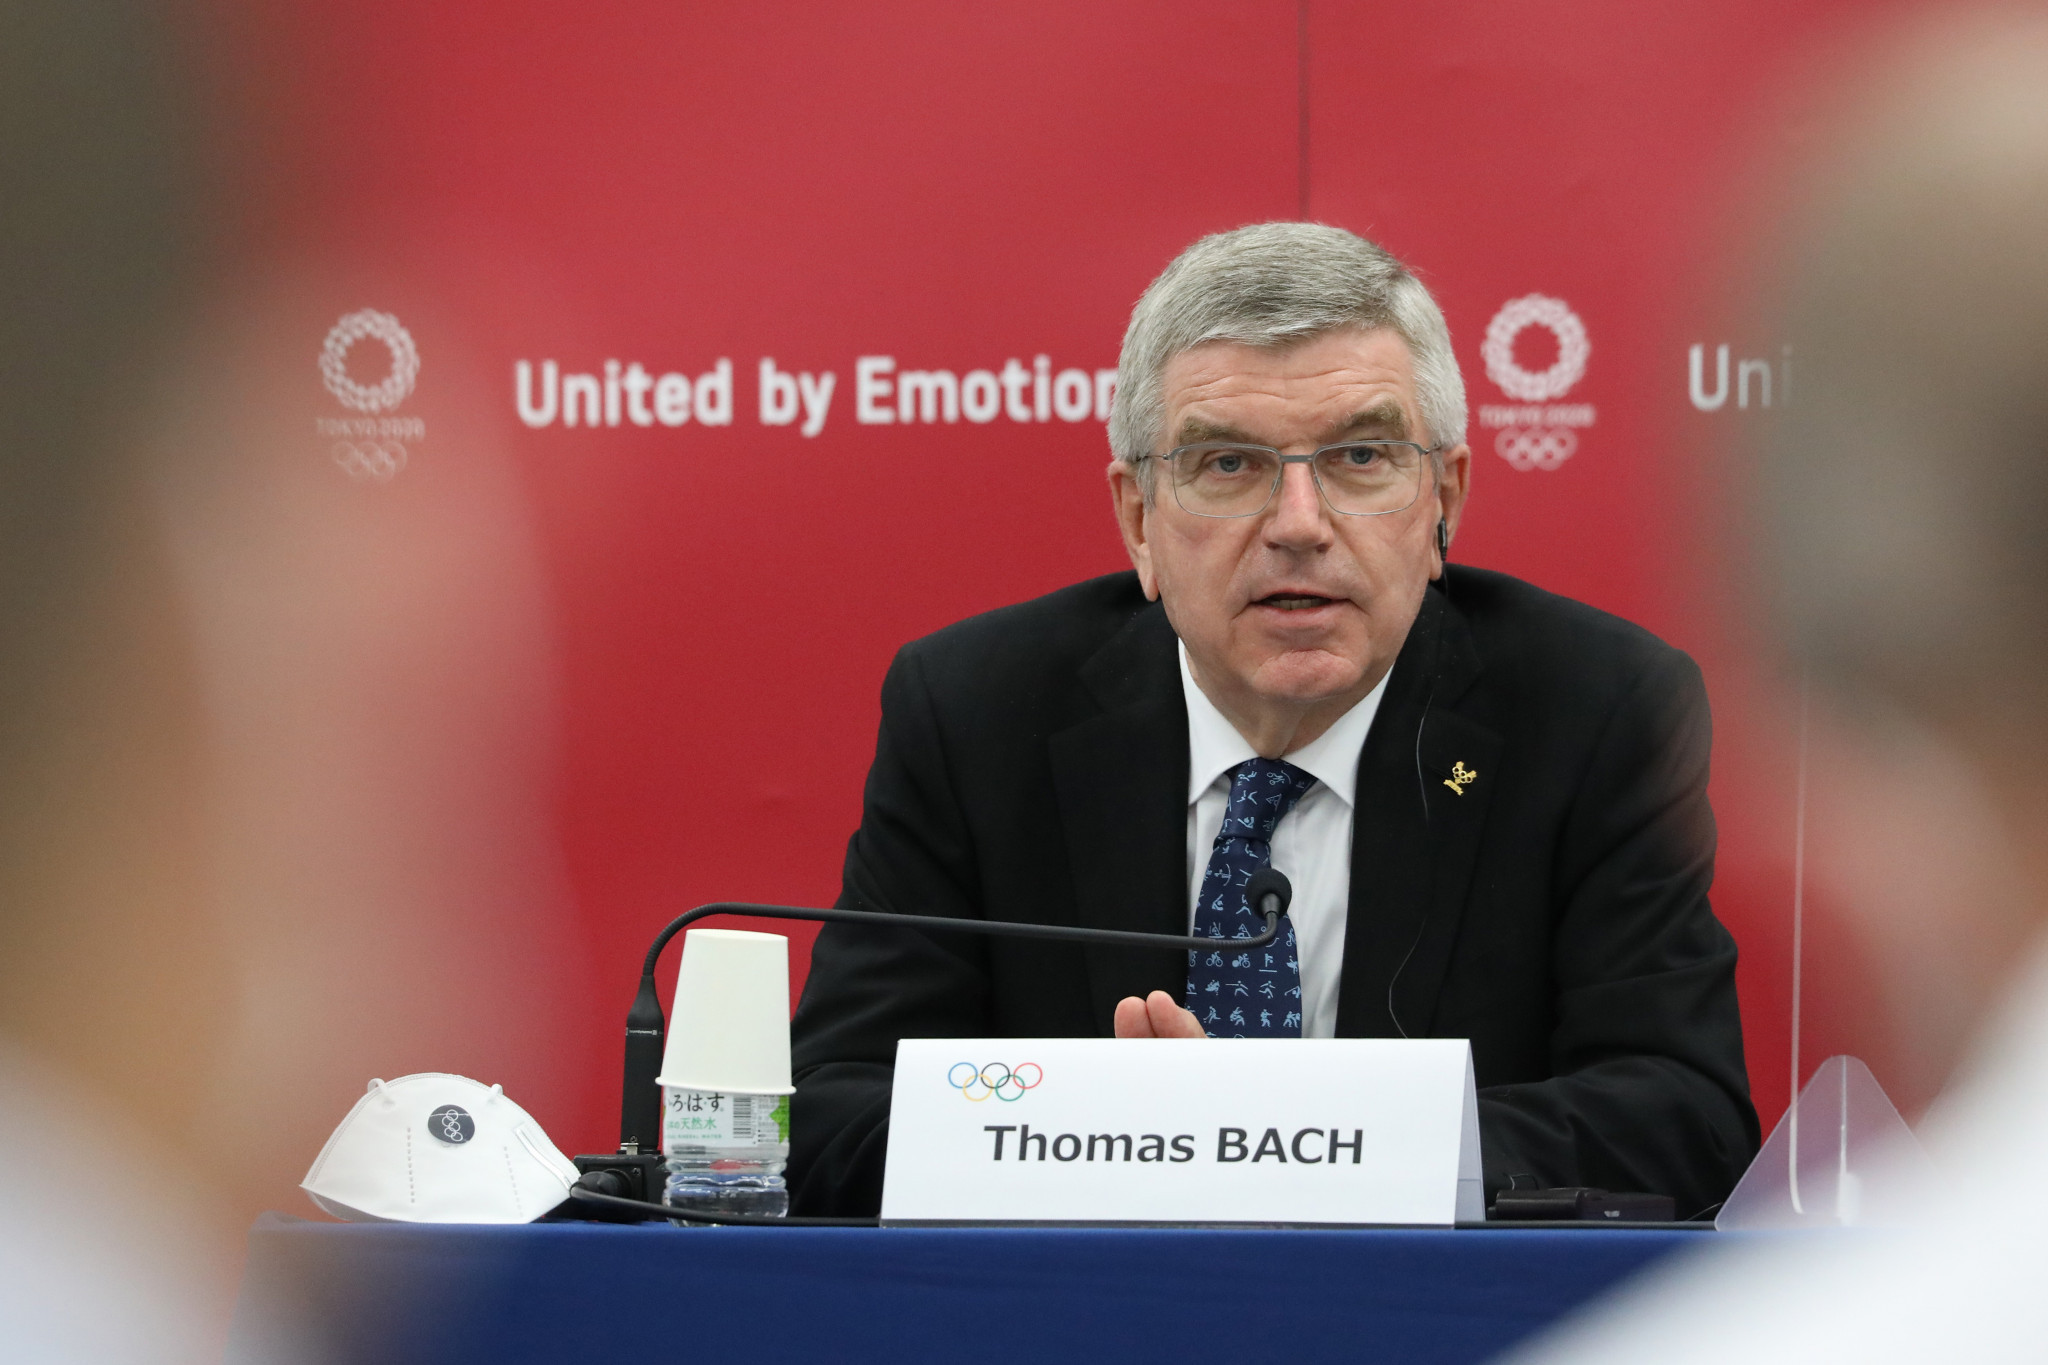 Thomas Bach claimed the IOC is